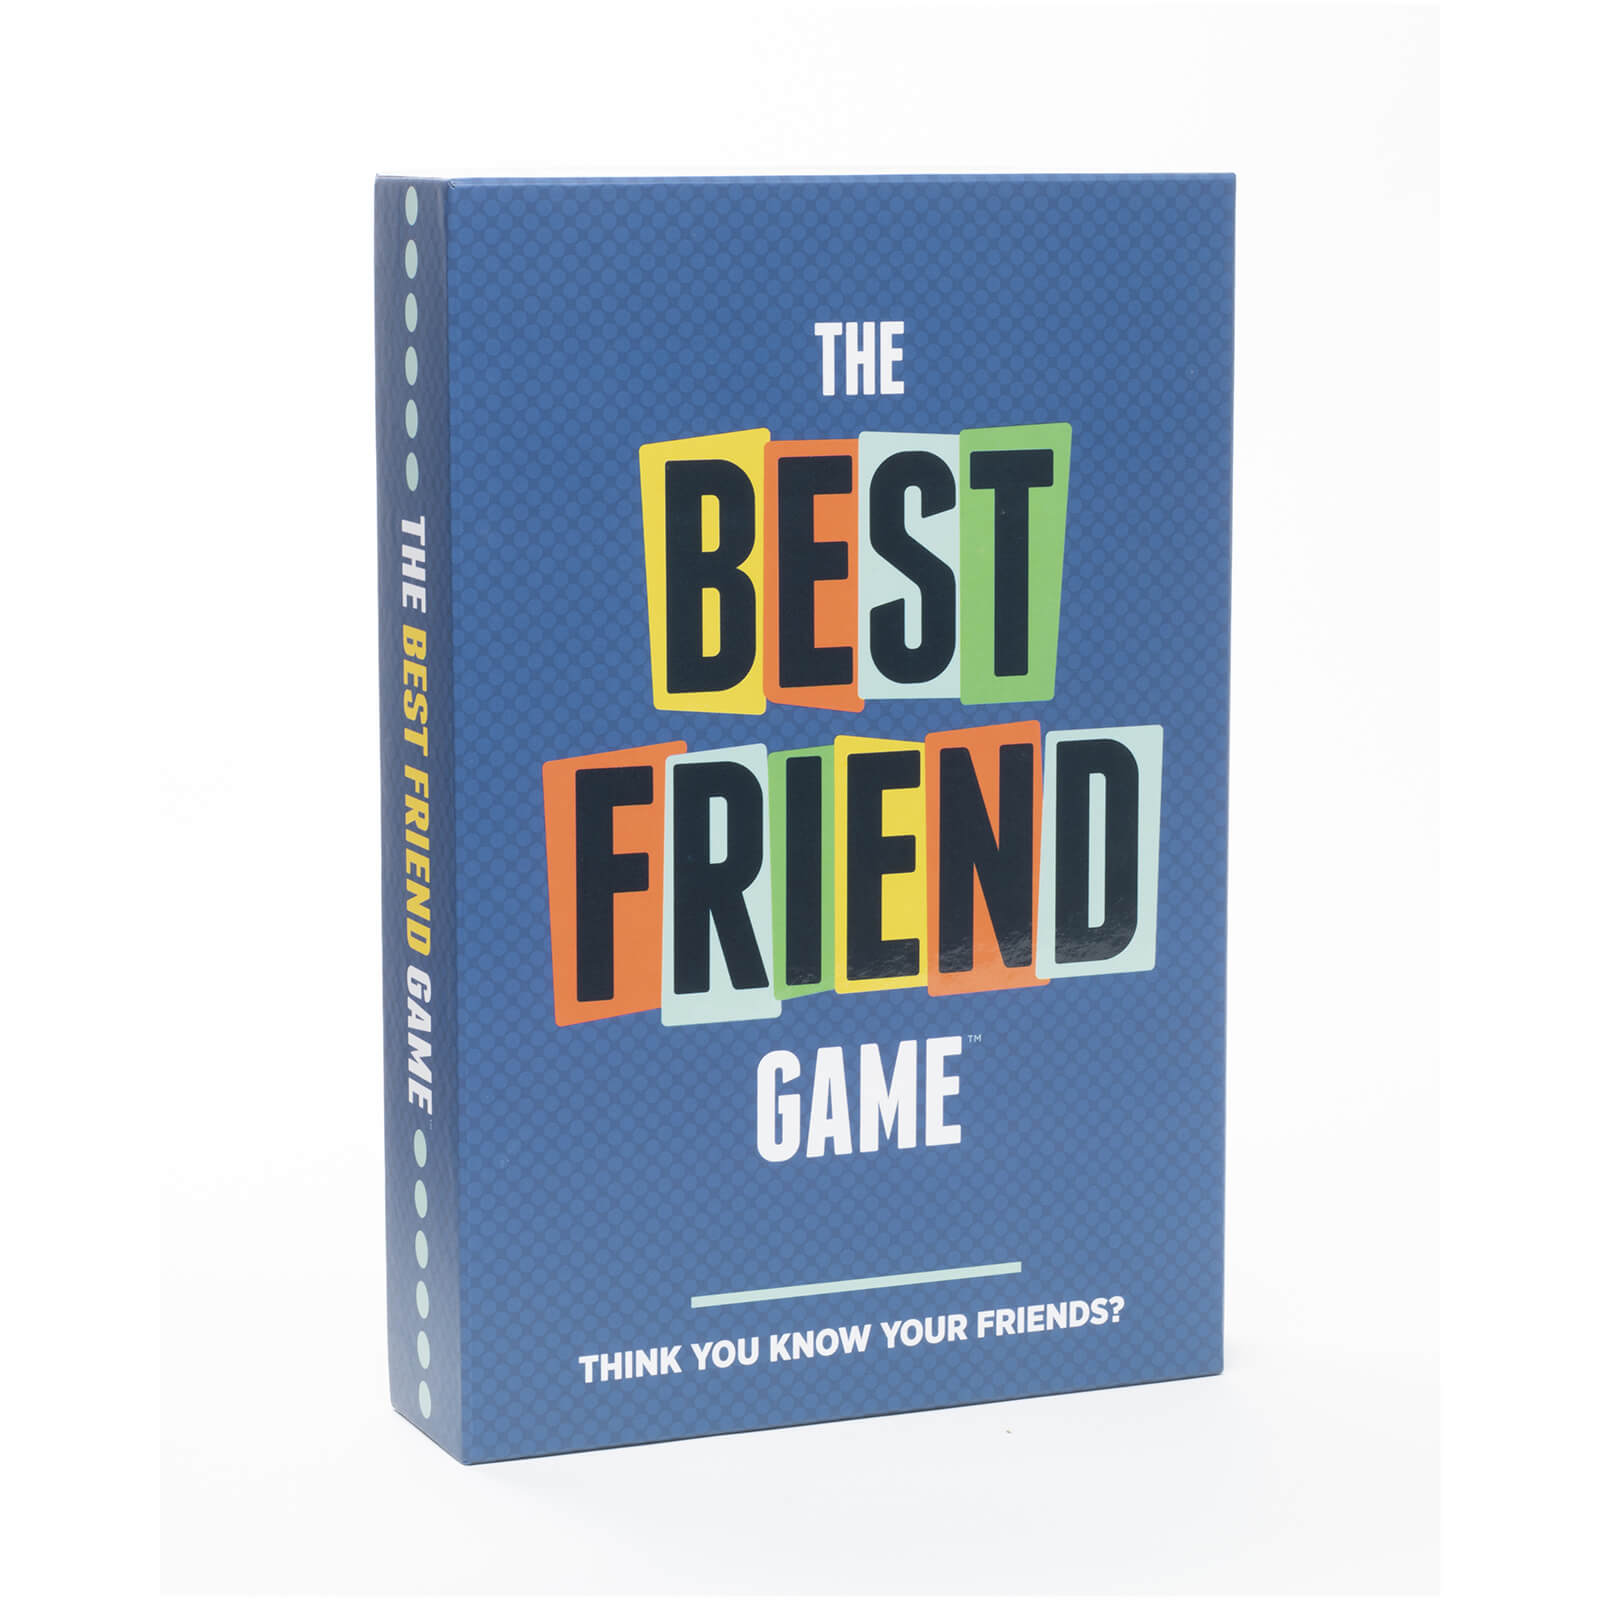 Image of The Best Friend Game